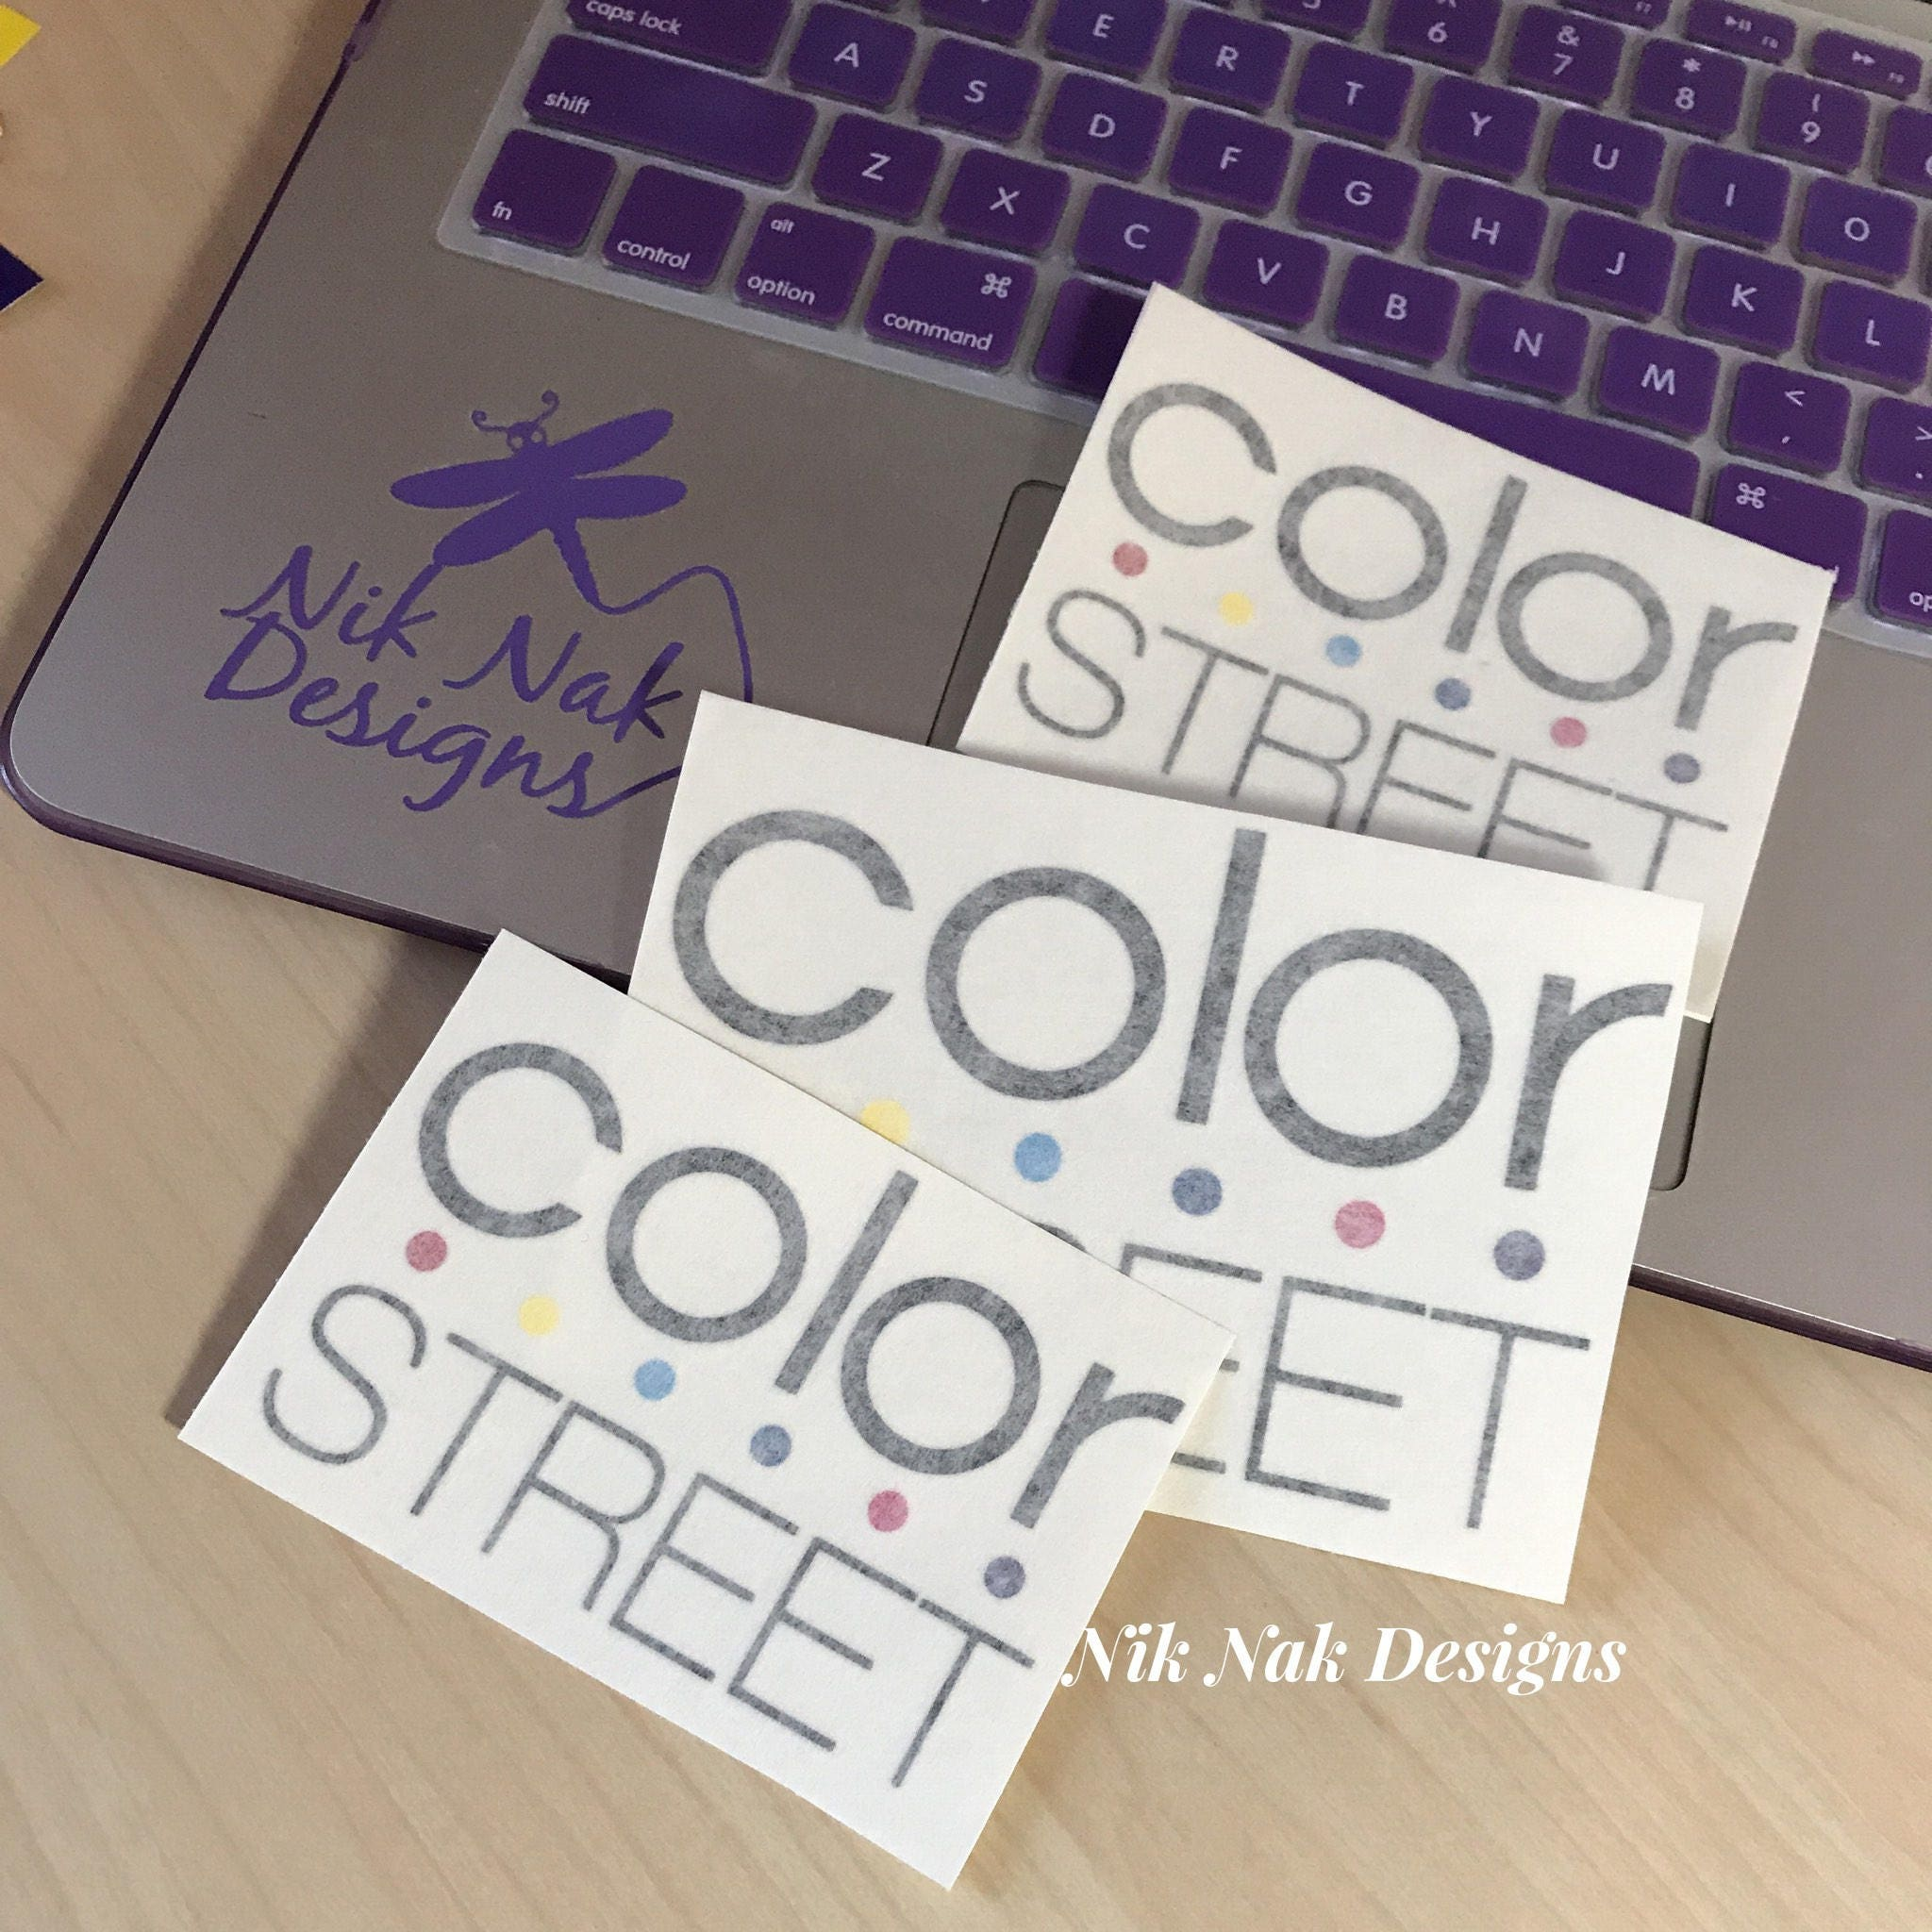 Color Street Decal Color Street Logo